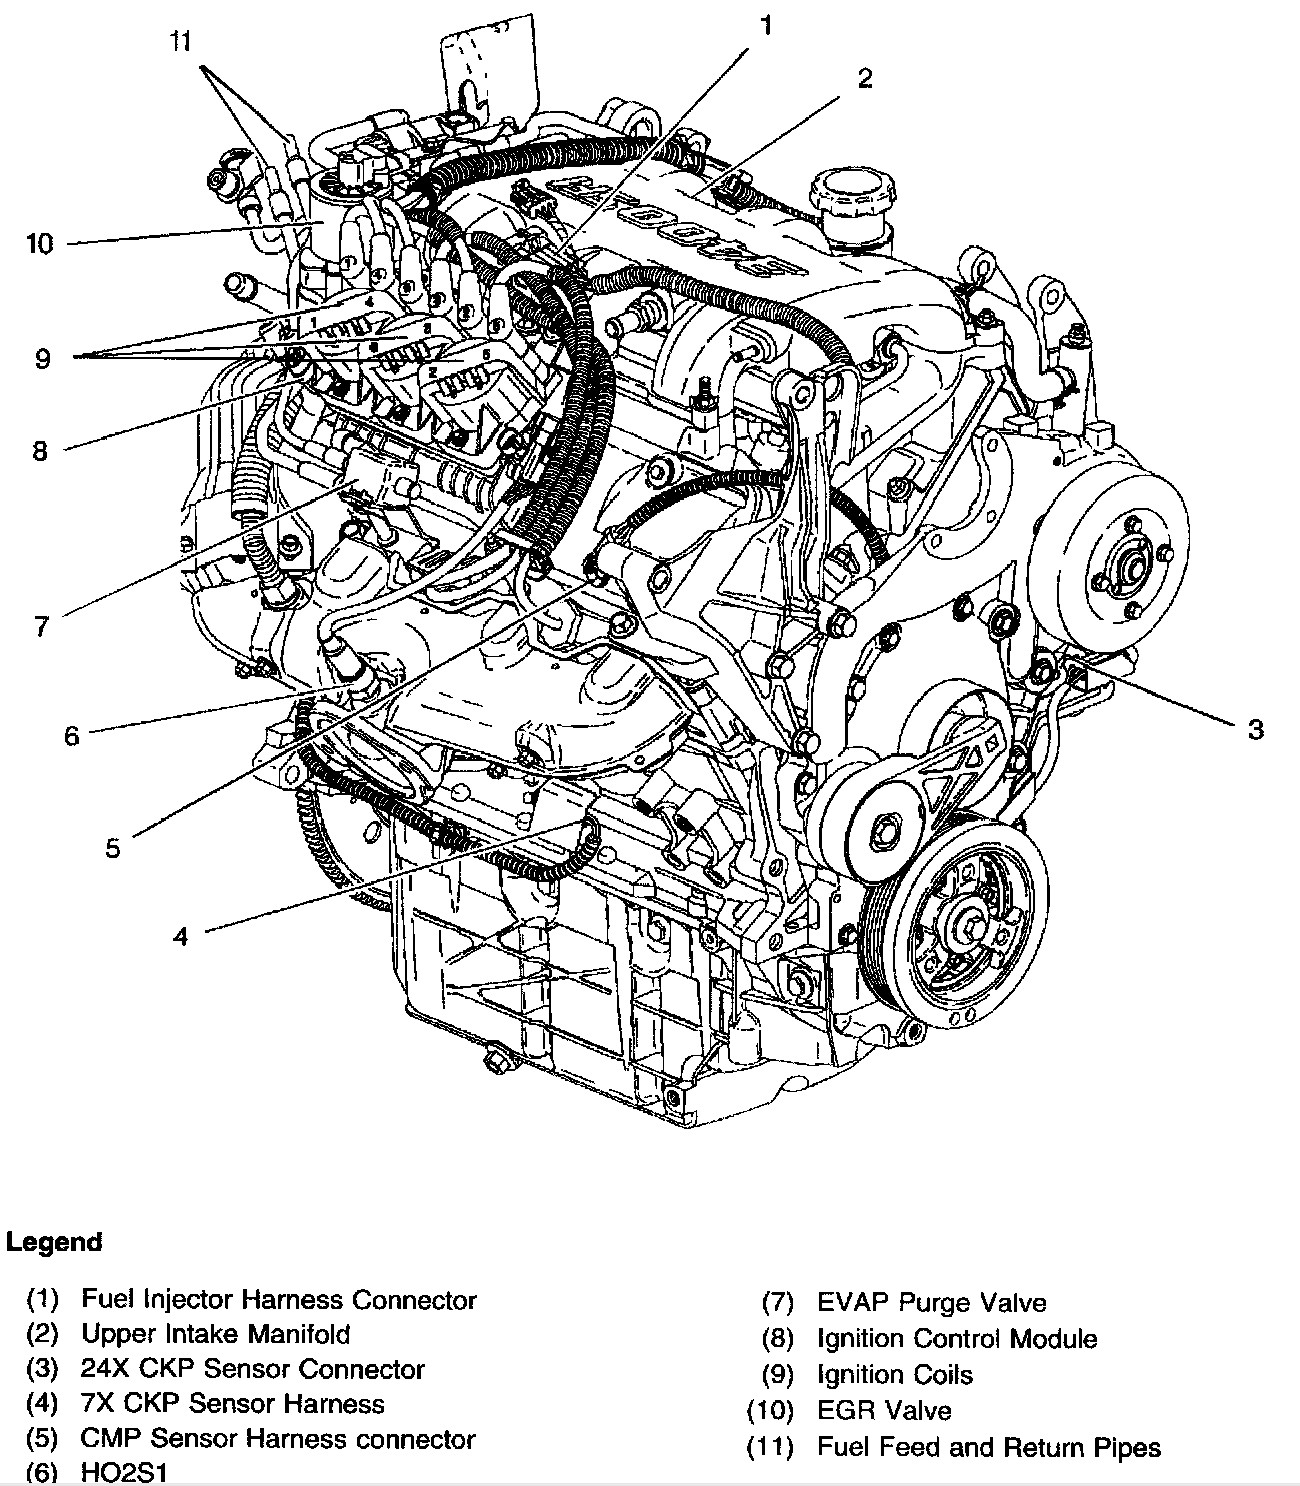 hight resolution of 2011 camaro engine diagram wiring diagram database 1996 camaro engine diagram wiring diagram priv 2011 camaro